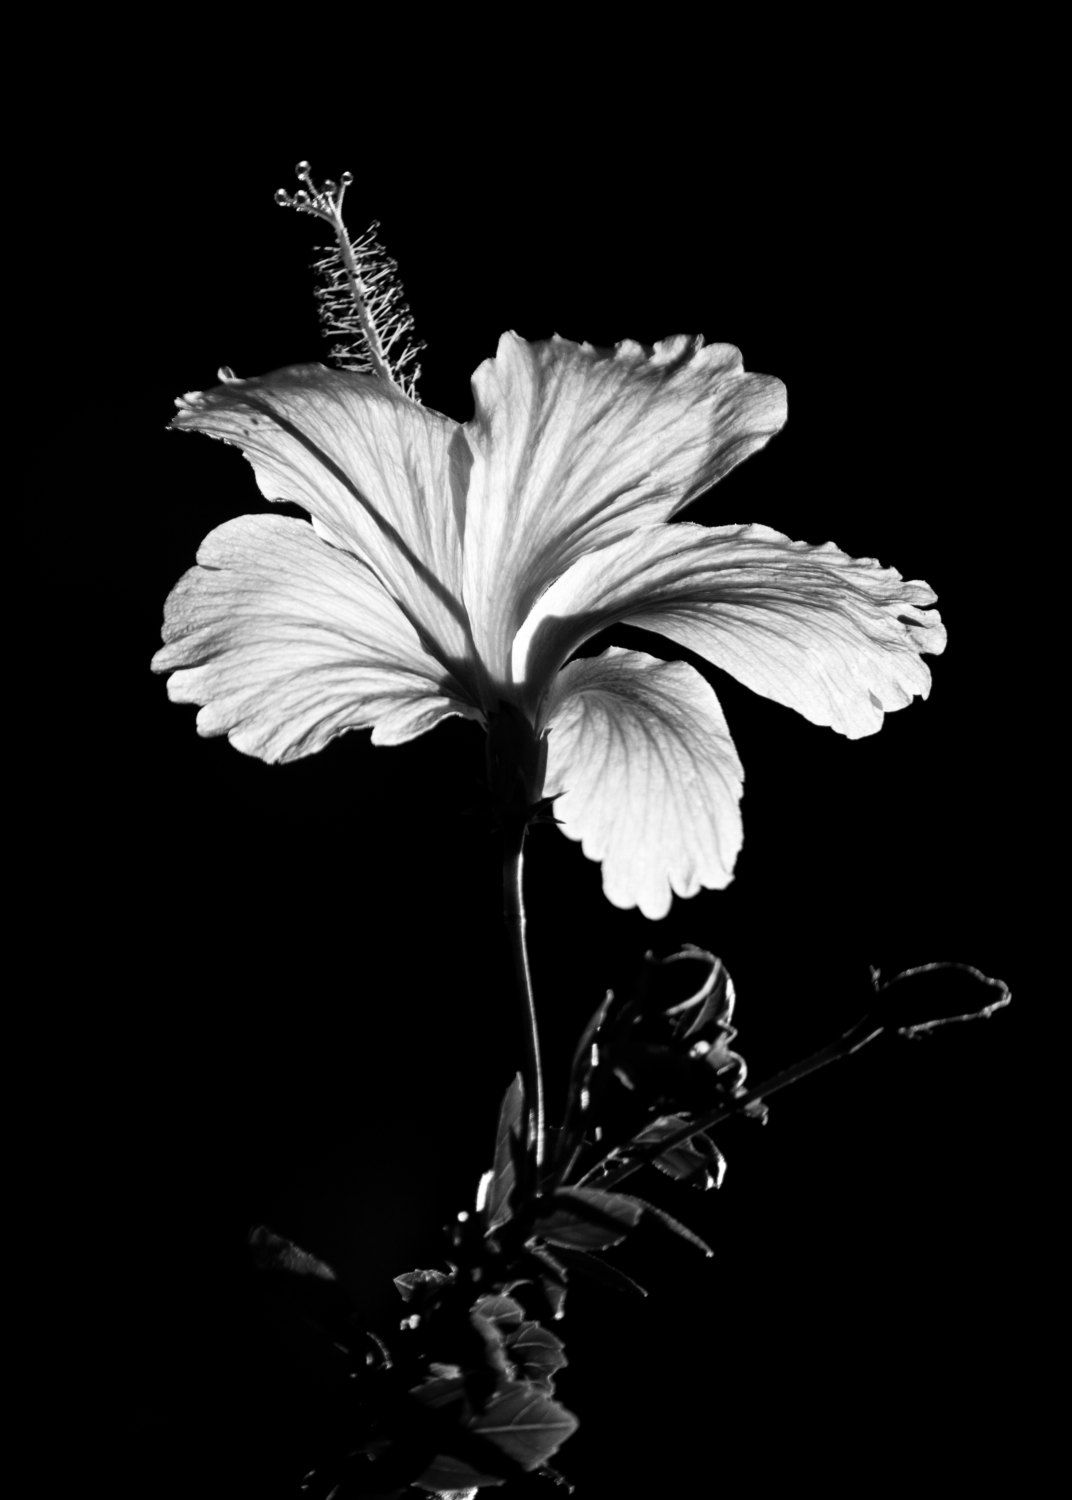 Black and white hibiscus flower photography floral nature 8x10 8x12 black and white hibiscus flower photography bkphillipsart izmirmasajfo